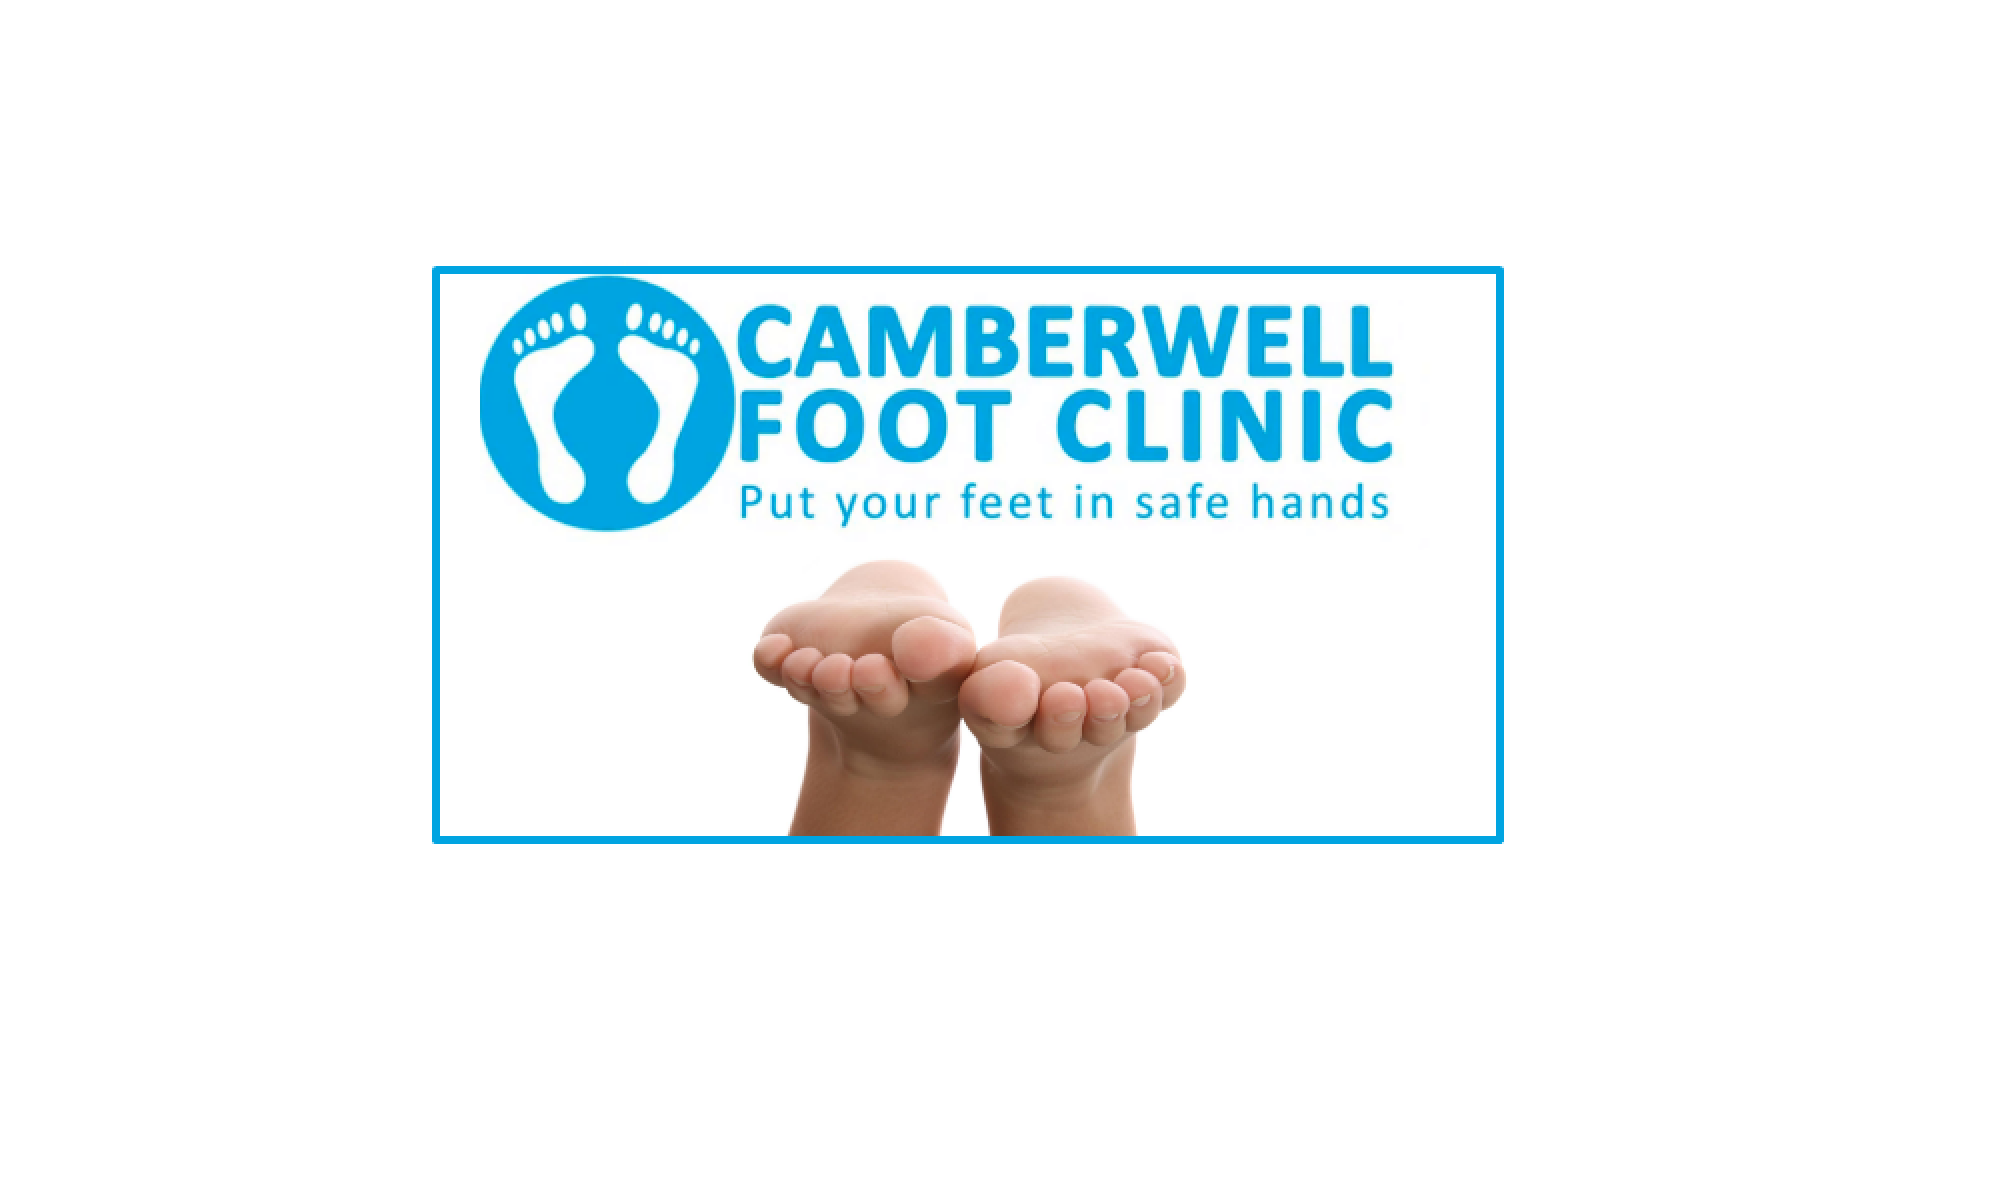 Camberwell Foot Clinic